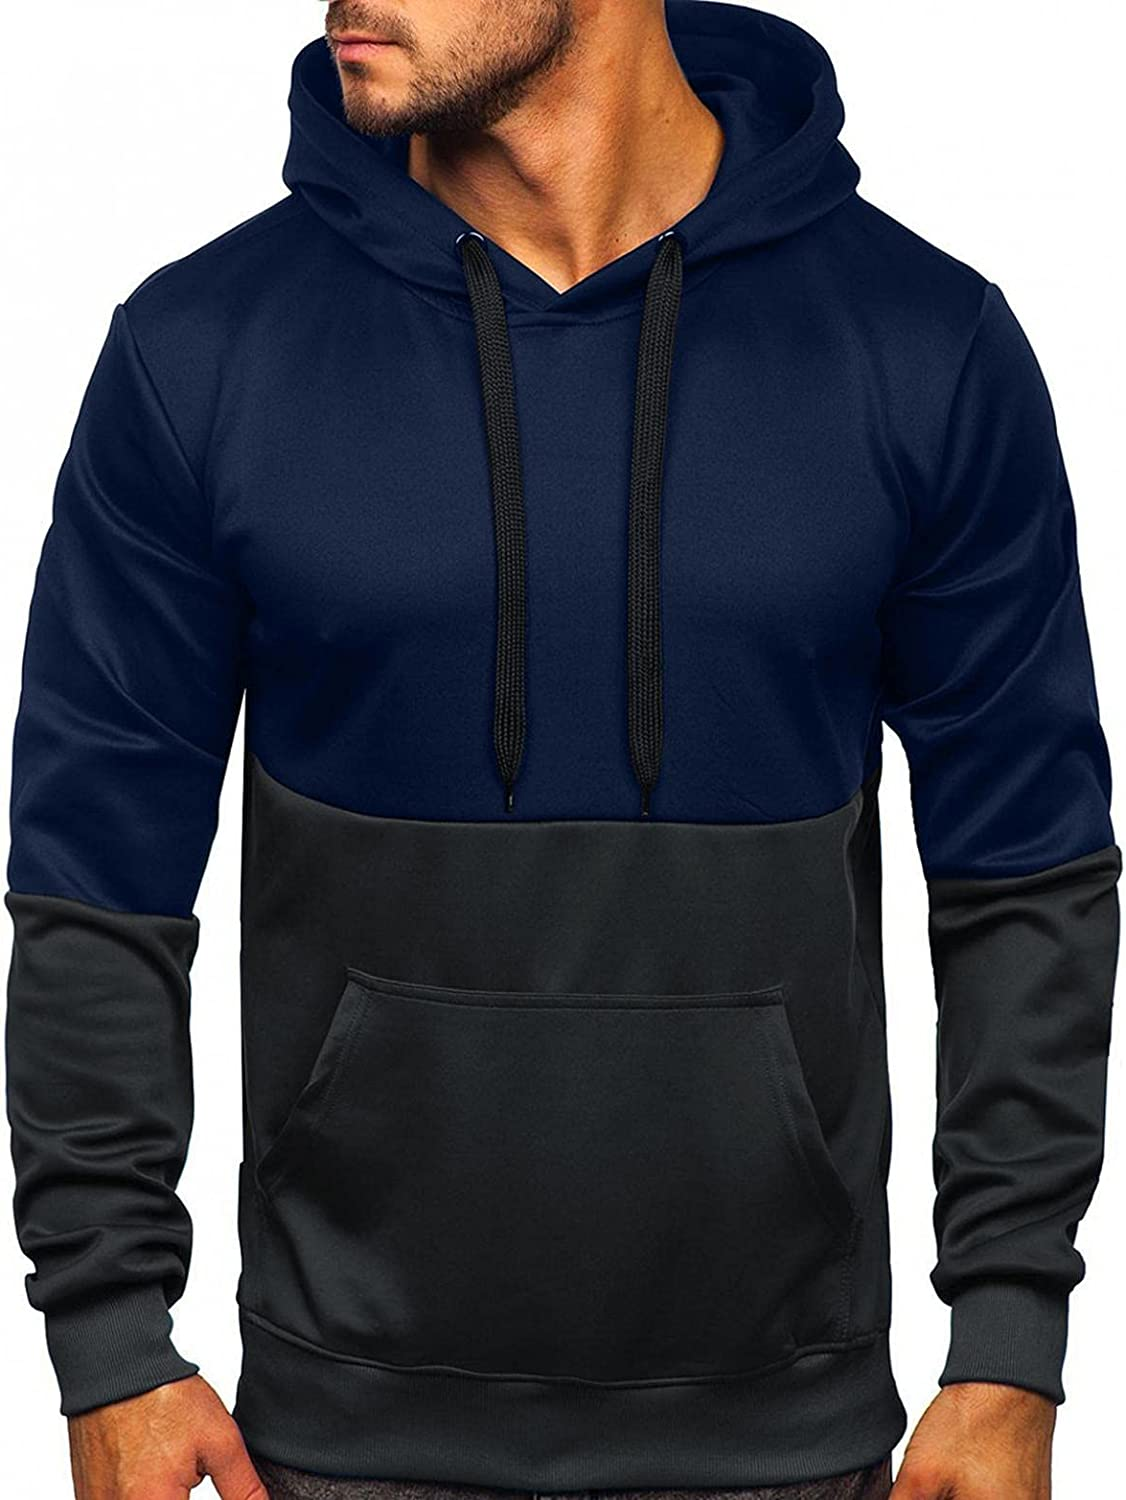 Aayomet Hoodies Sweatshirts for Men Patchwork Color Block Tops Long Sleeve Workout Athletic Hooded Pullover Blouses Sweaters